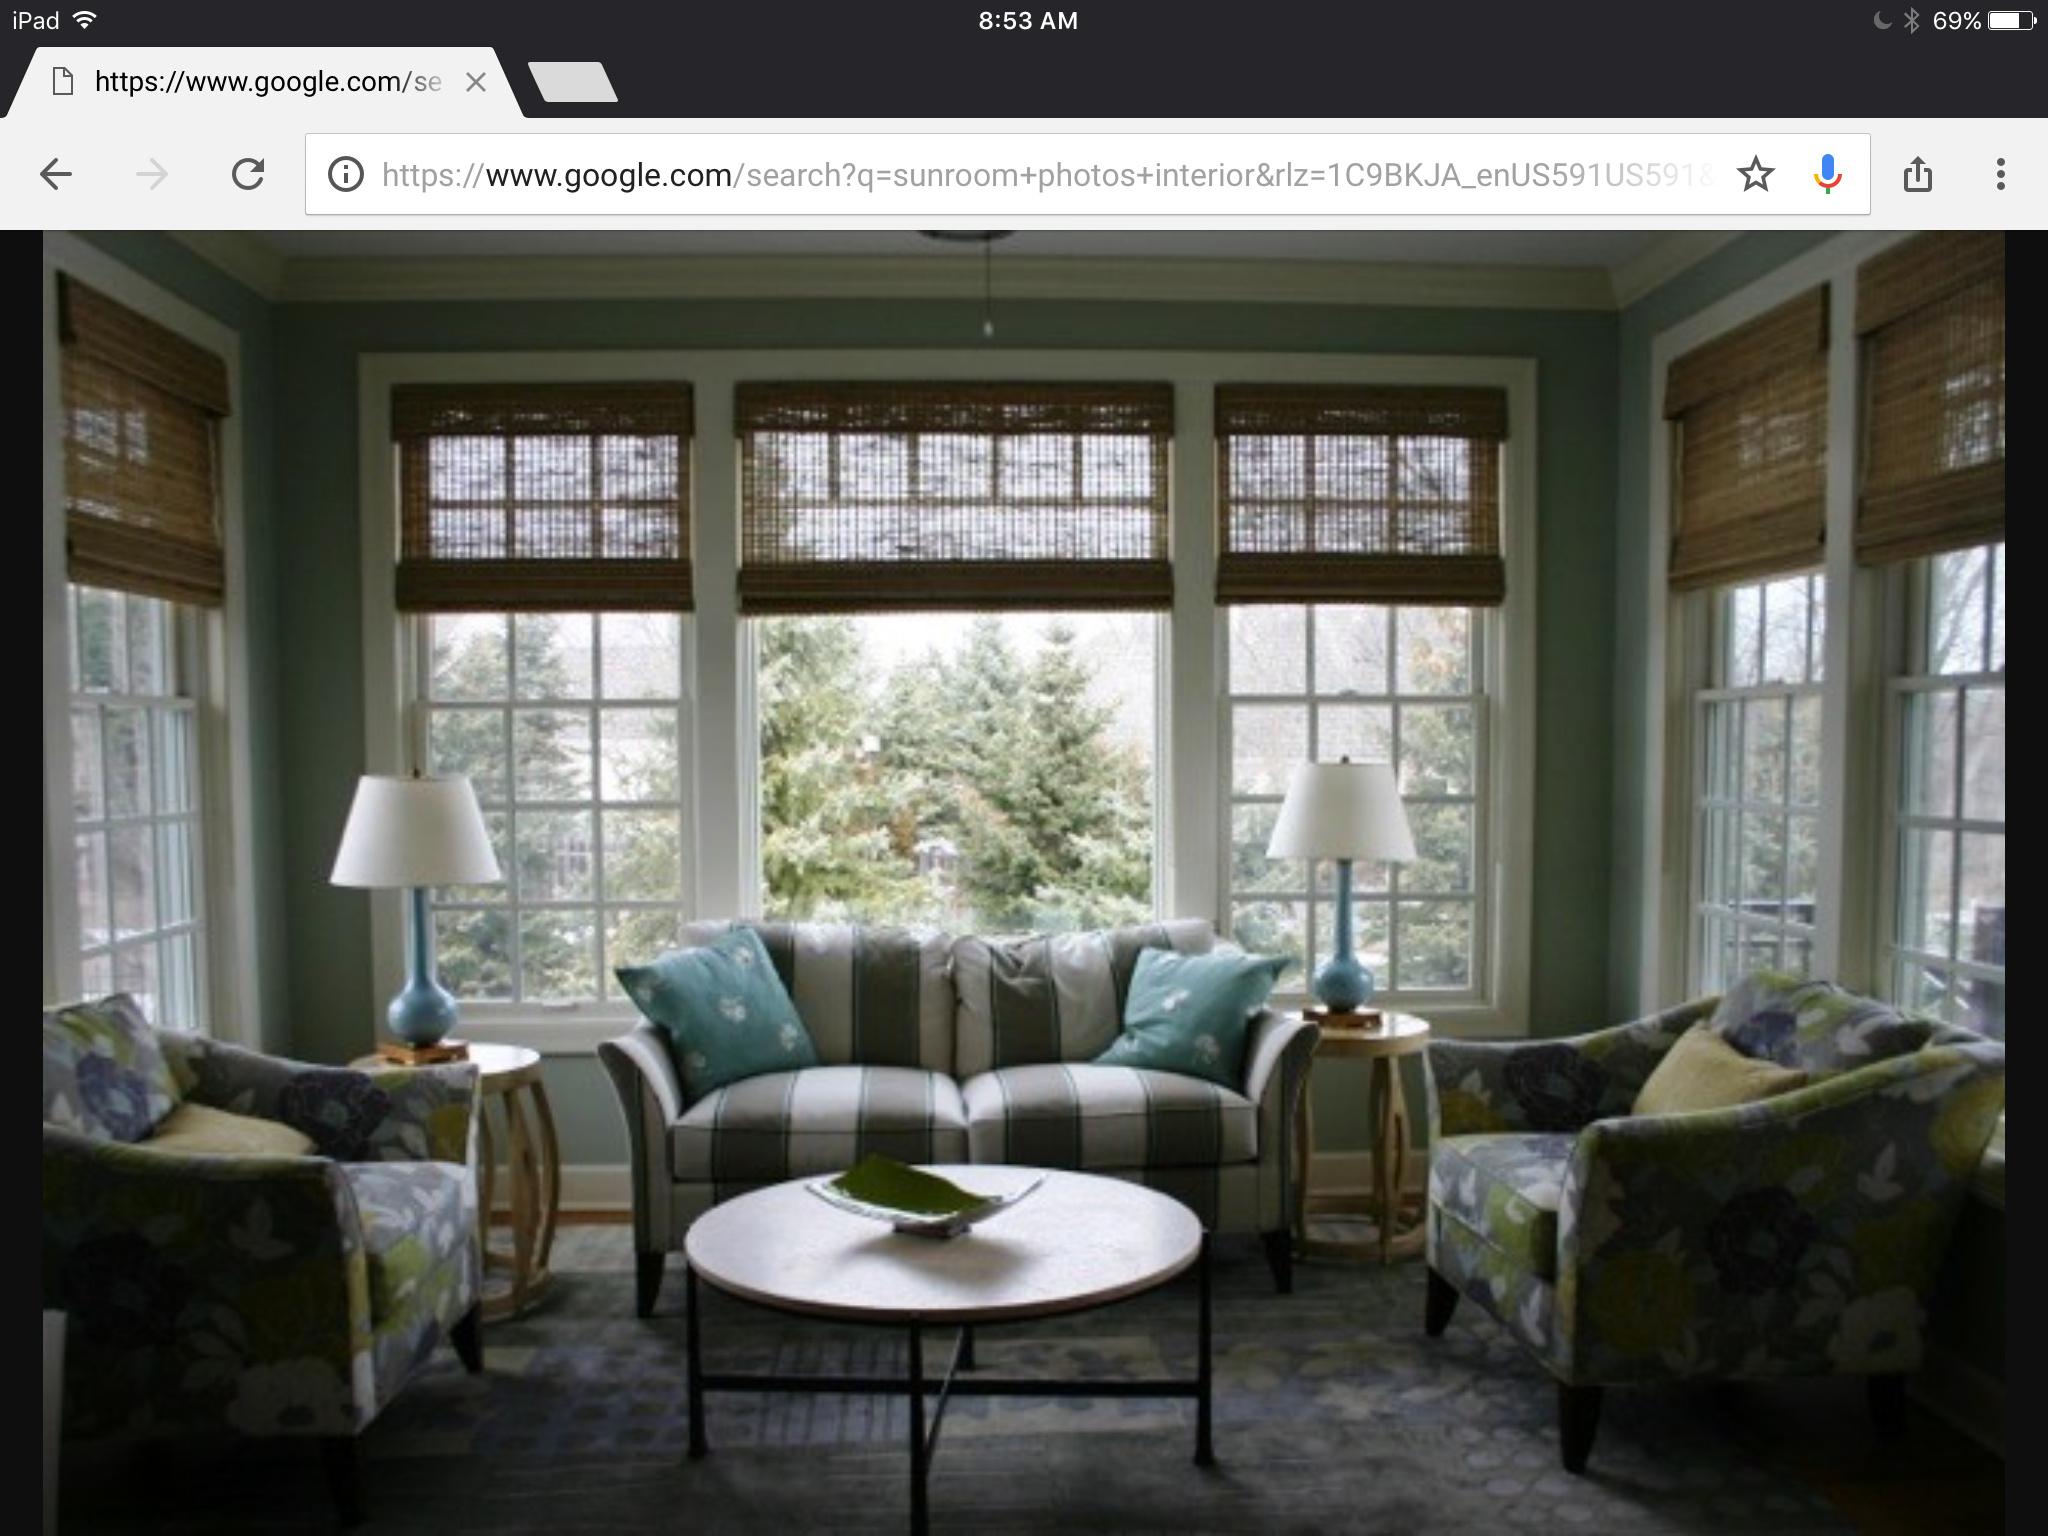 sunroom blinds cheap ideas a living room site shutters blinds more shutters  blinds more cheap ideas